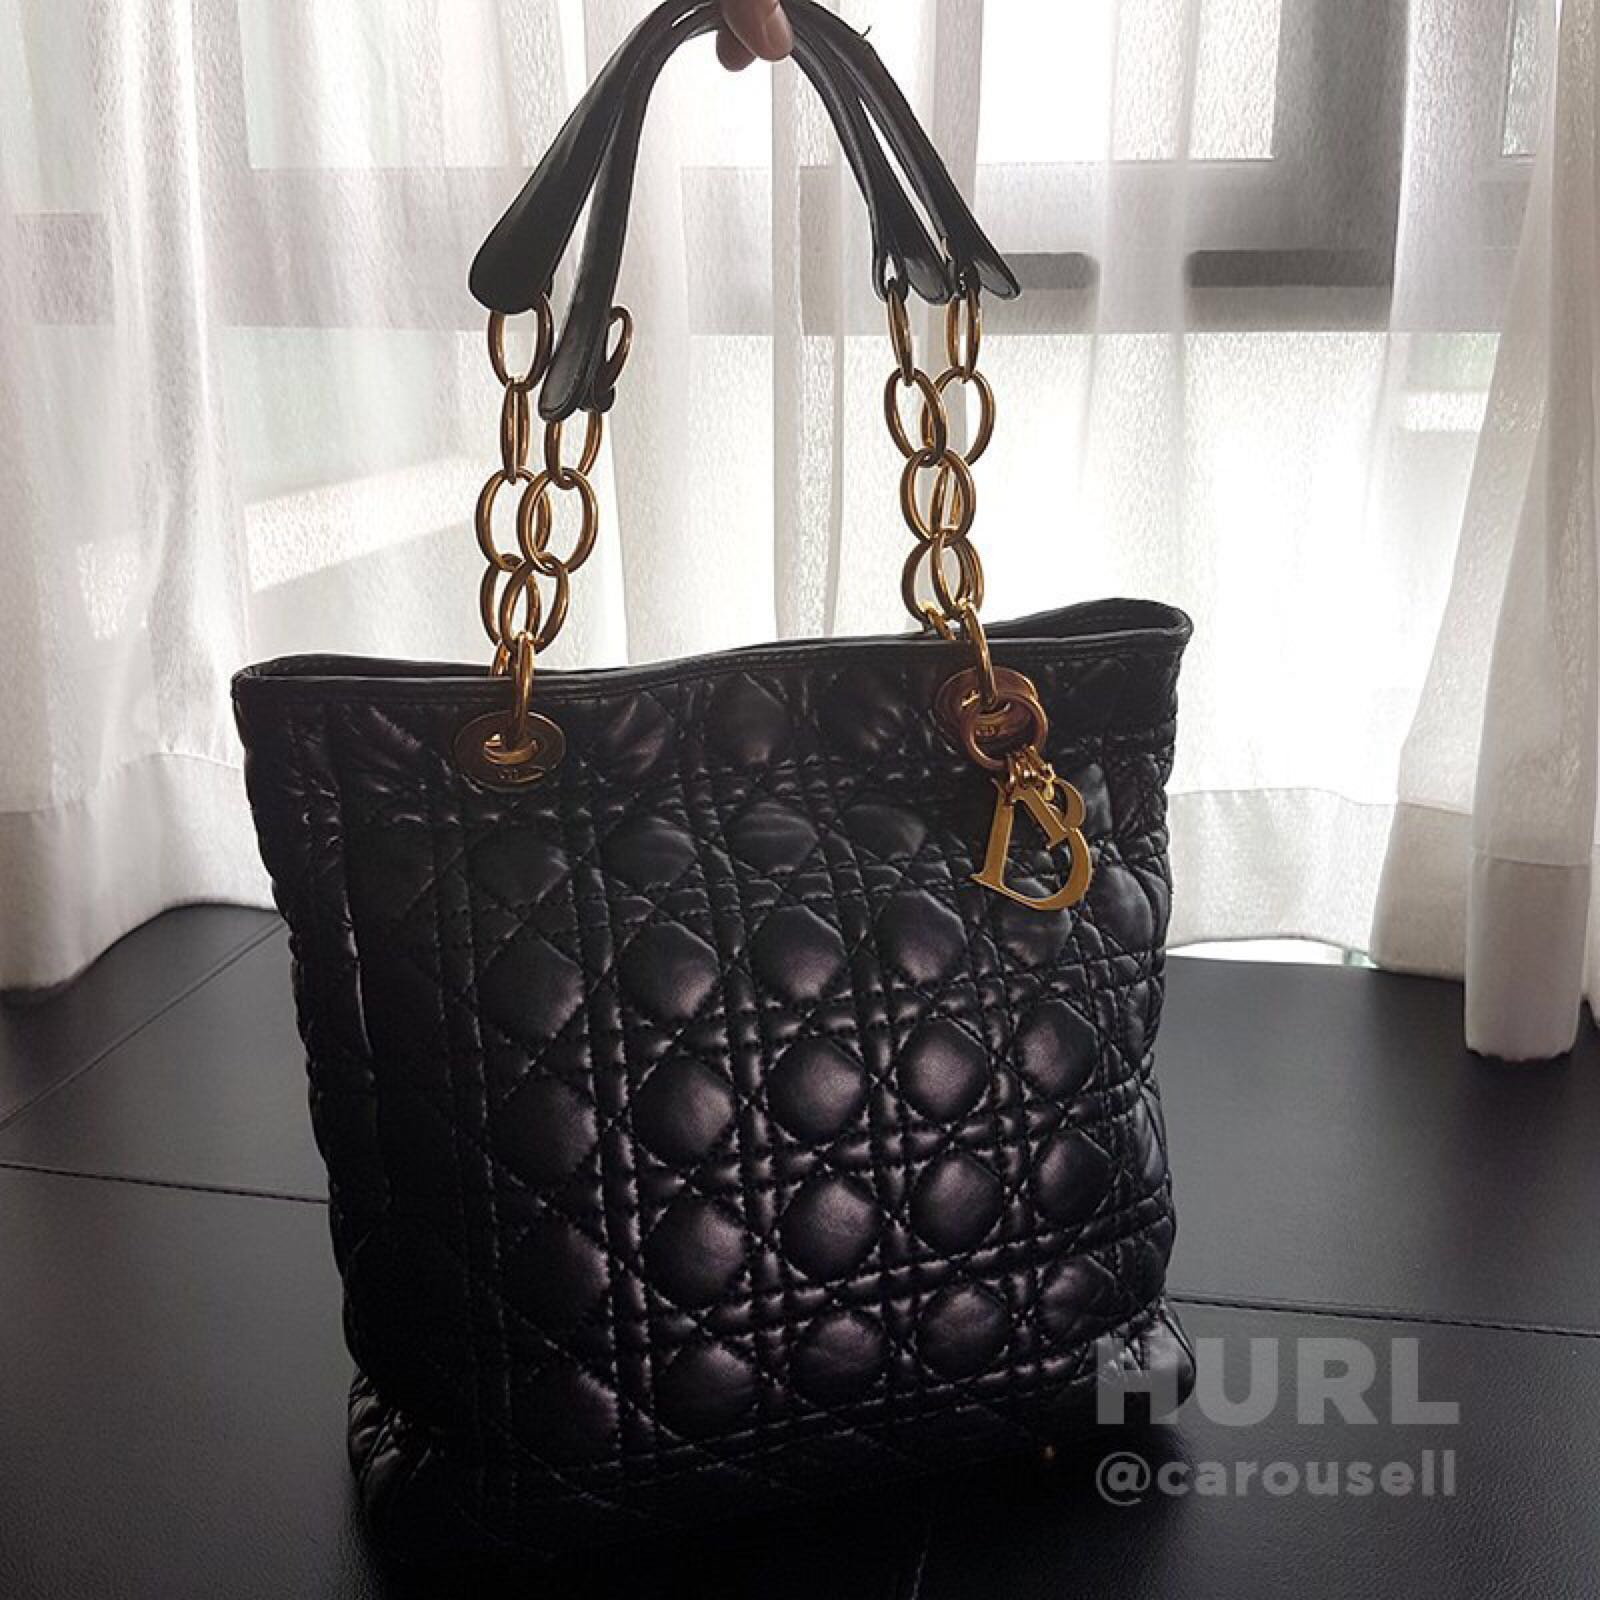 ec9f83643704 Christian Dior Black Cannage Quilted Lambskin Leather Soft Tote Bag ...